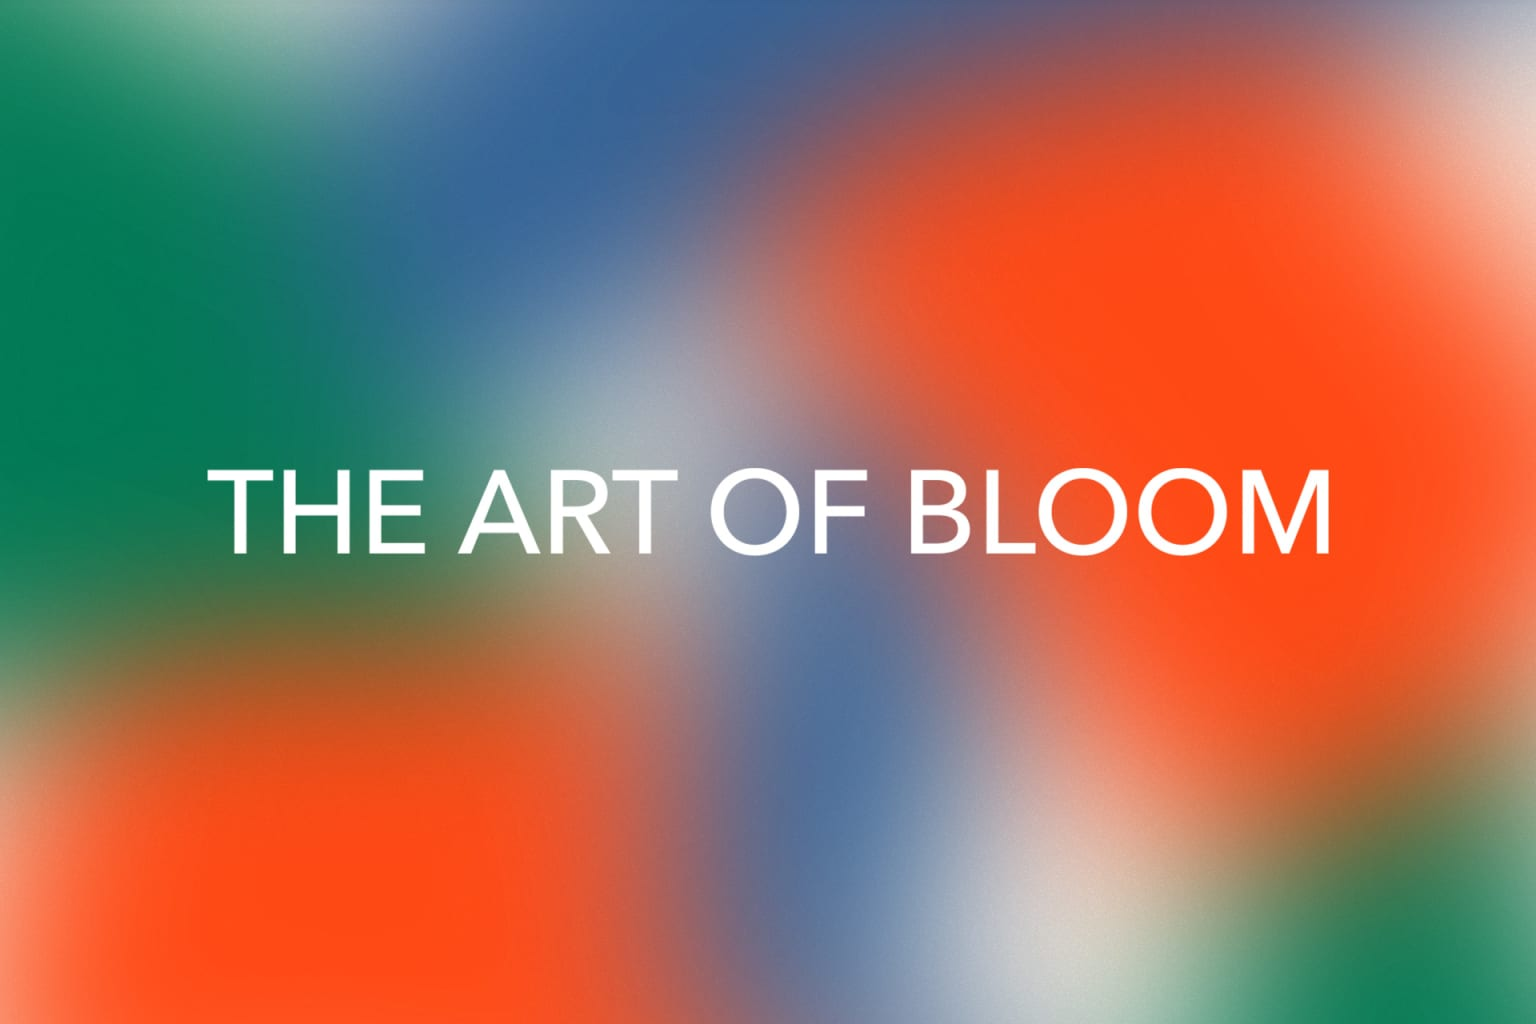 The Art of Bloom